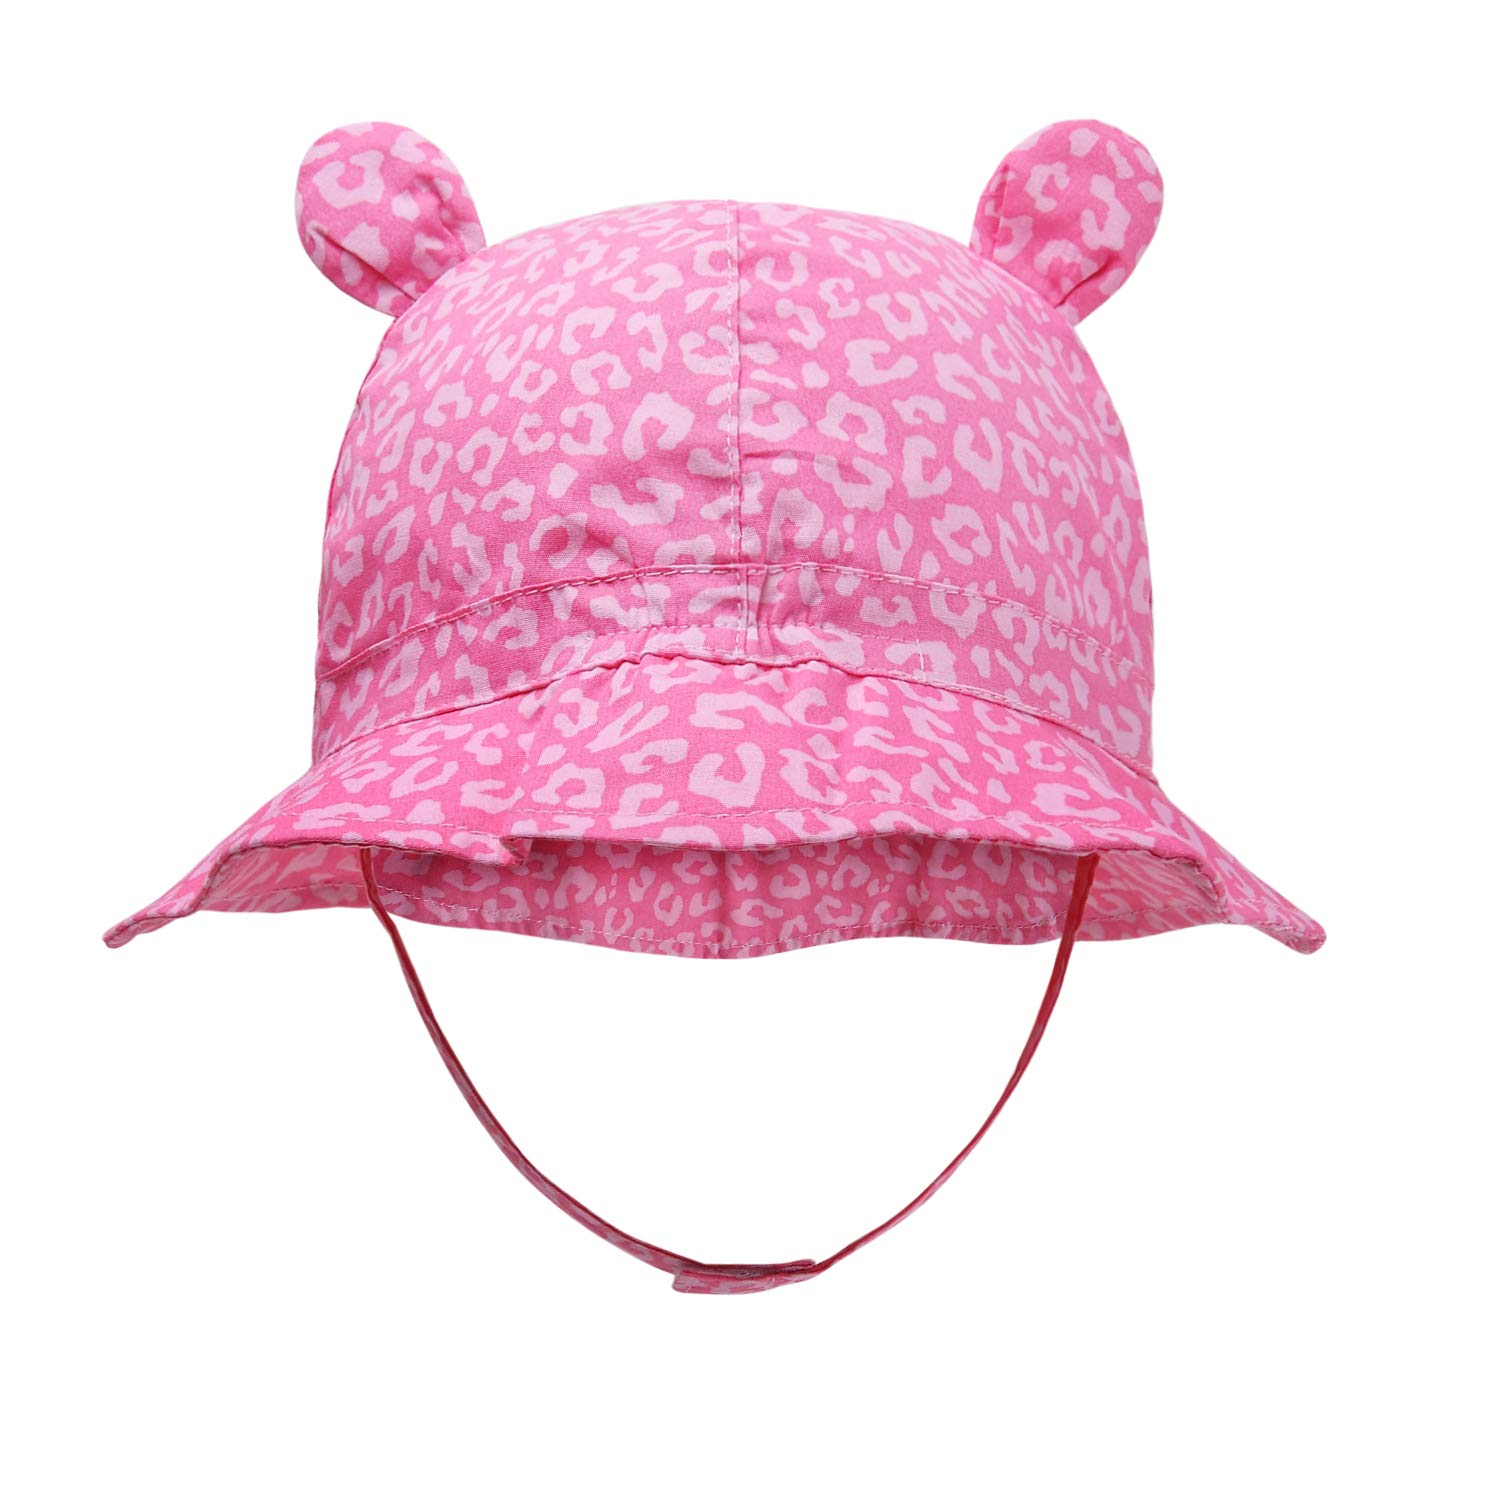 Amazon.com  vivobiniya Newborn Girl Summer Hats Baby Sun Hats Toddler hat  0-12M  Clothing a3818355469